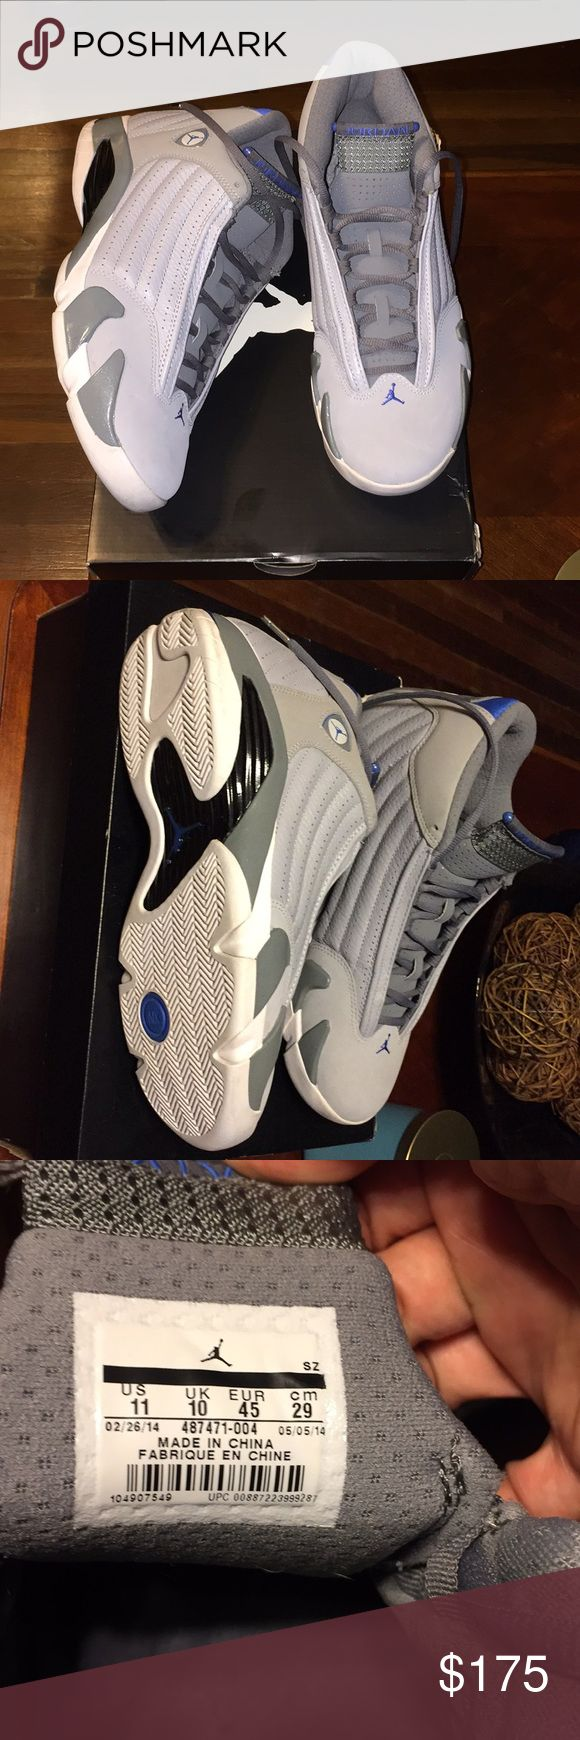 Air Jordan 14 Retro Worn 3x's. Grey and blue, still in box. Air Jordan Shoes Sneakers